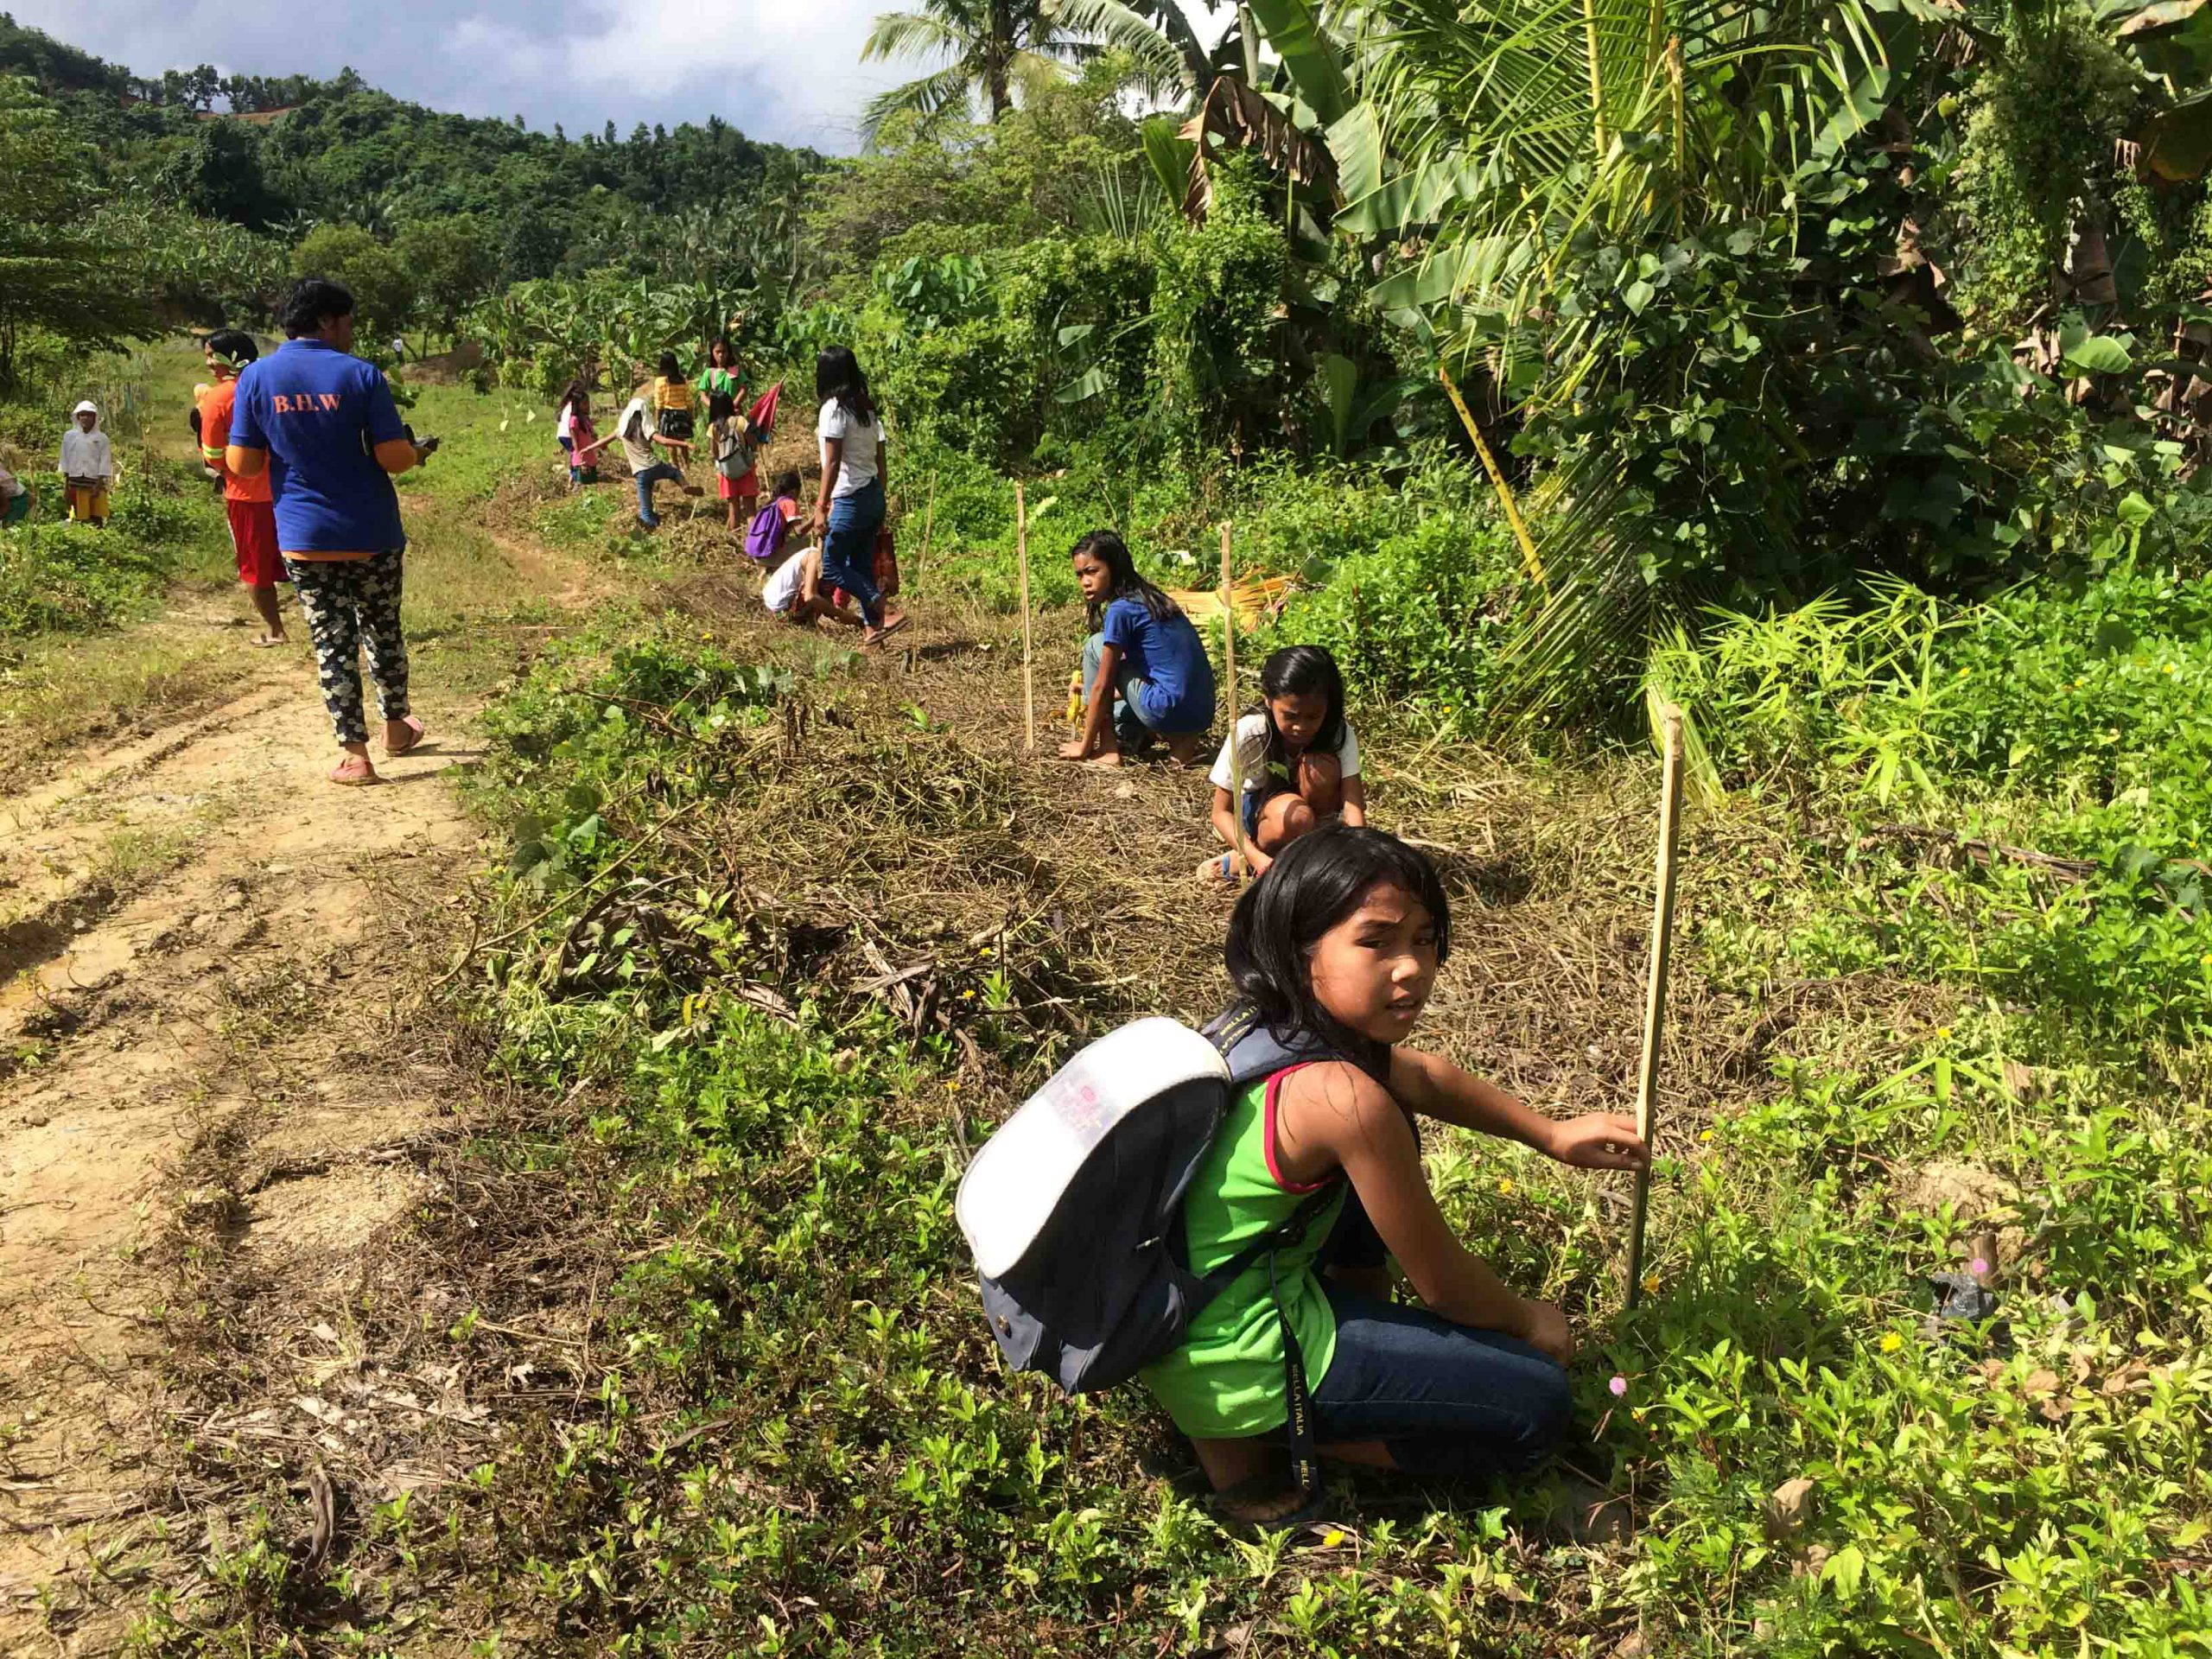 Students, their families plant 3.5T trees in Pinamungahan uplands